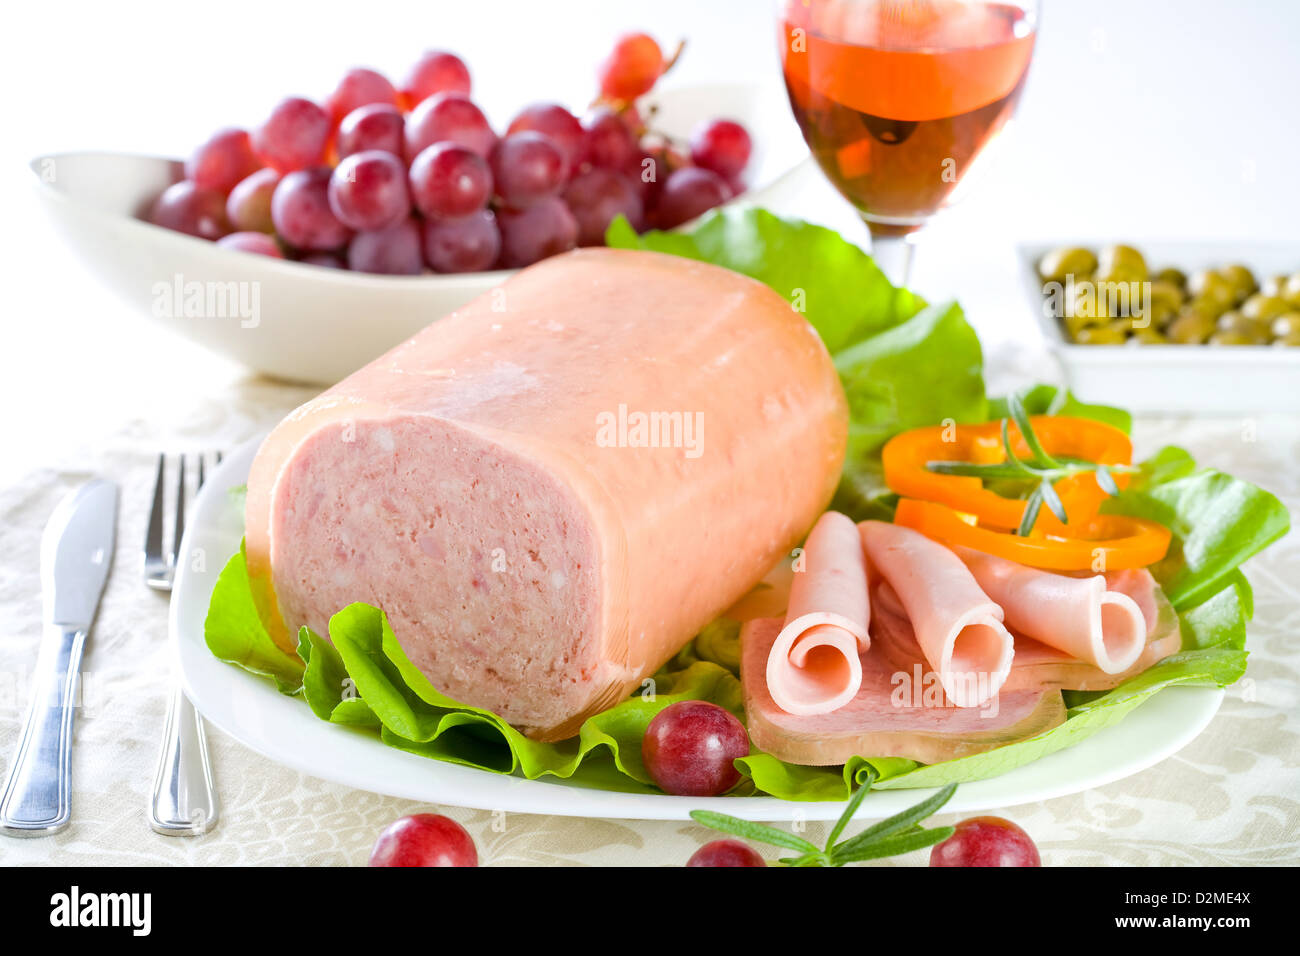 Luncheon meat, salad, olives and grapes - Stock Image